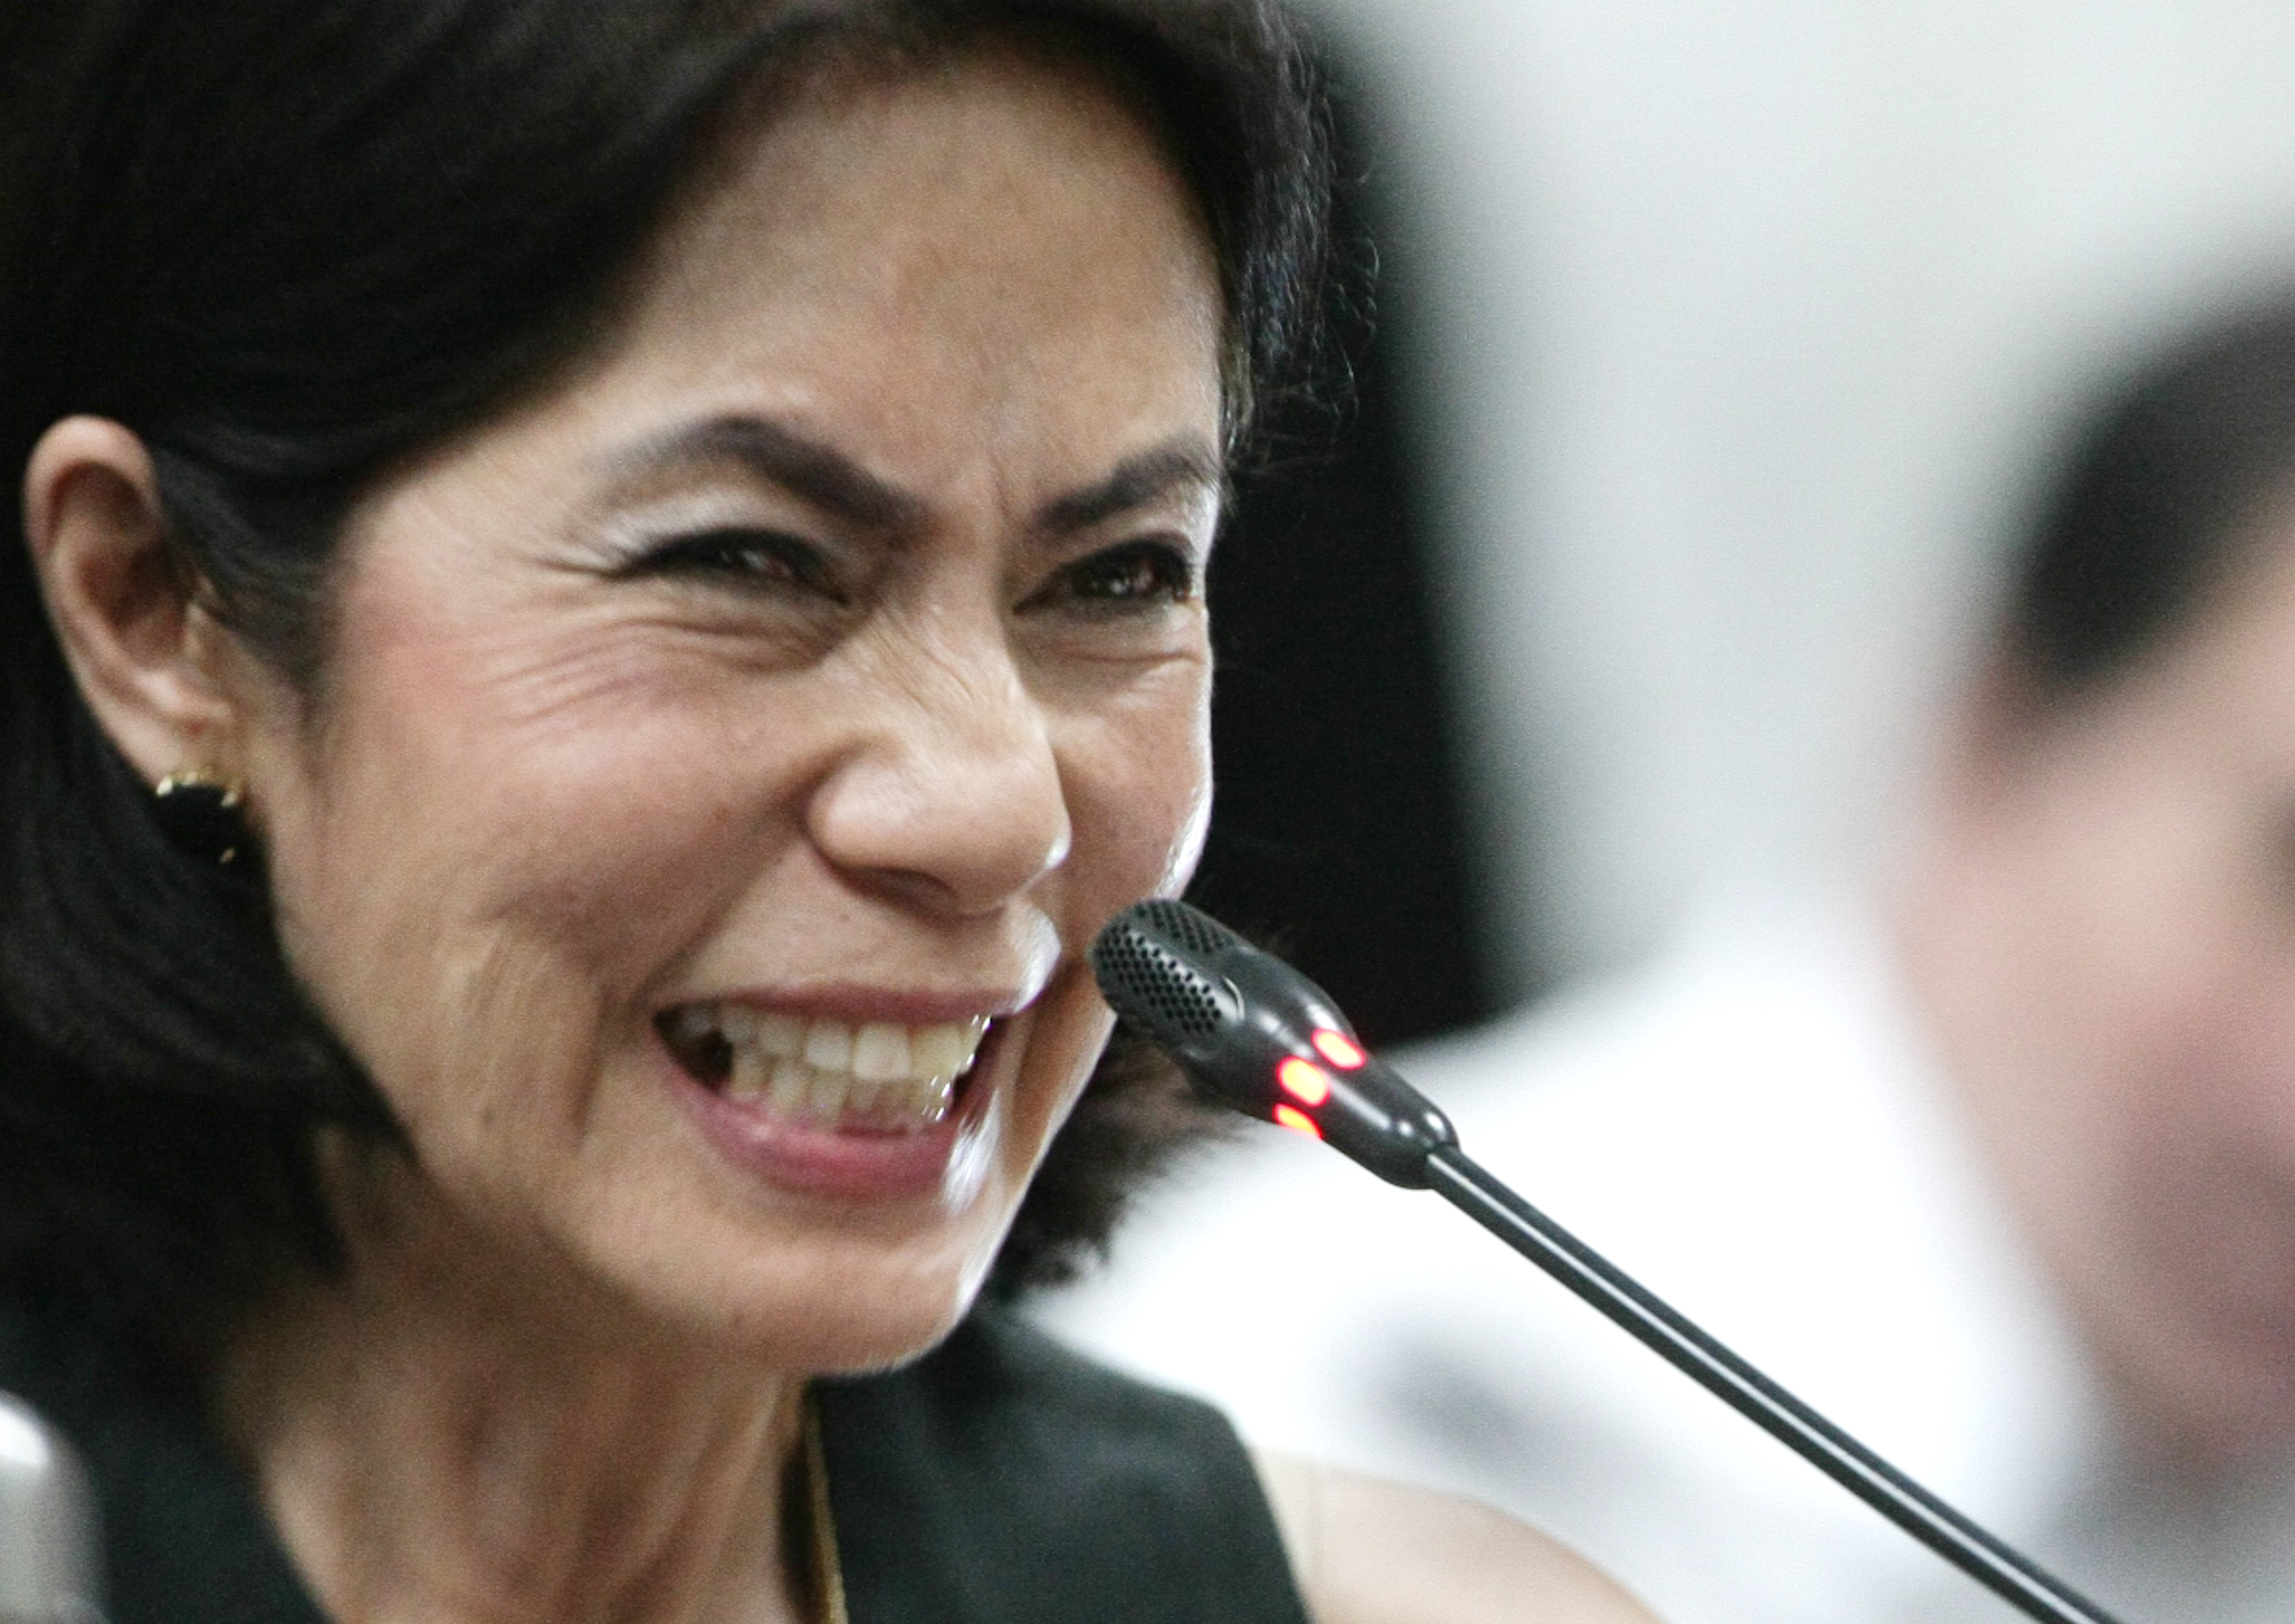 gina lopez - photo #10